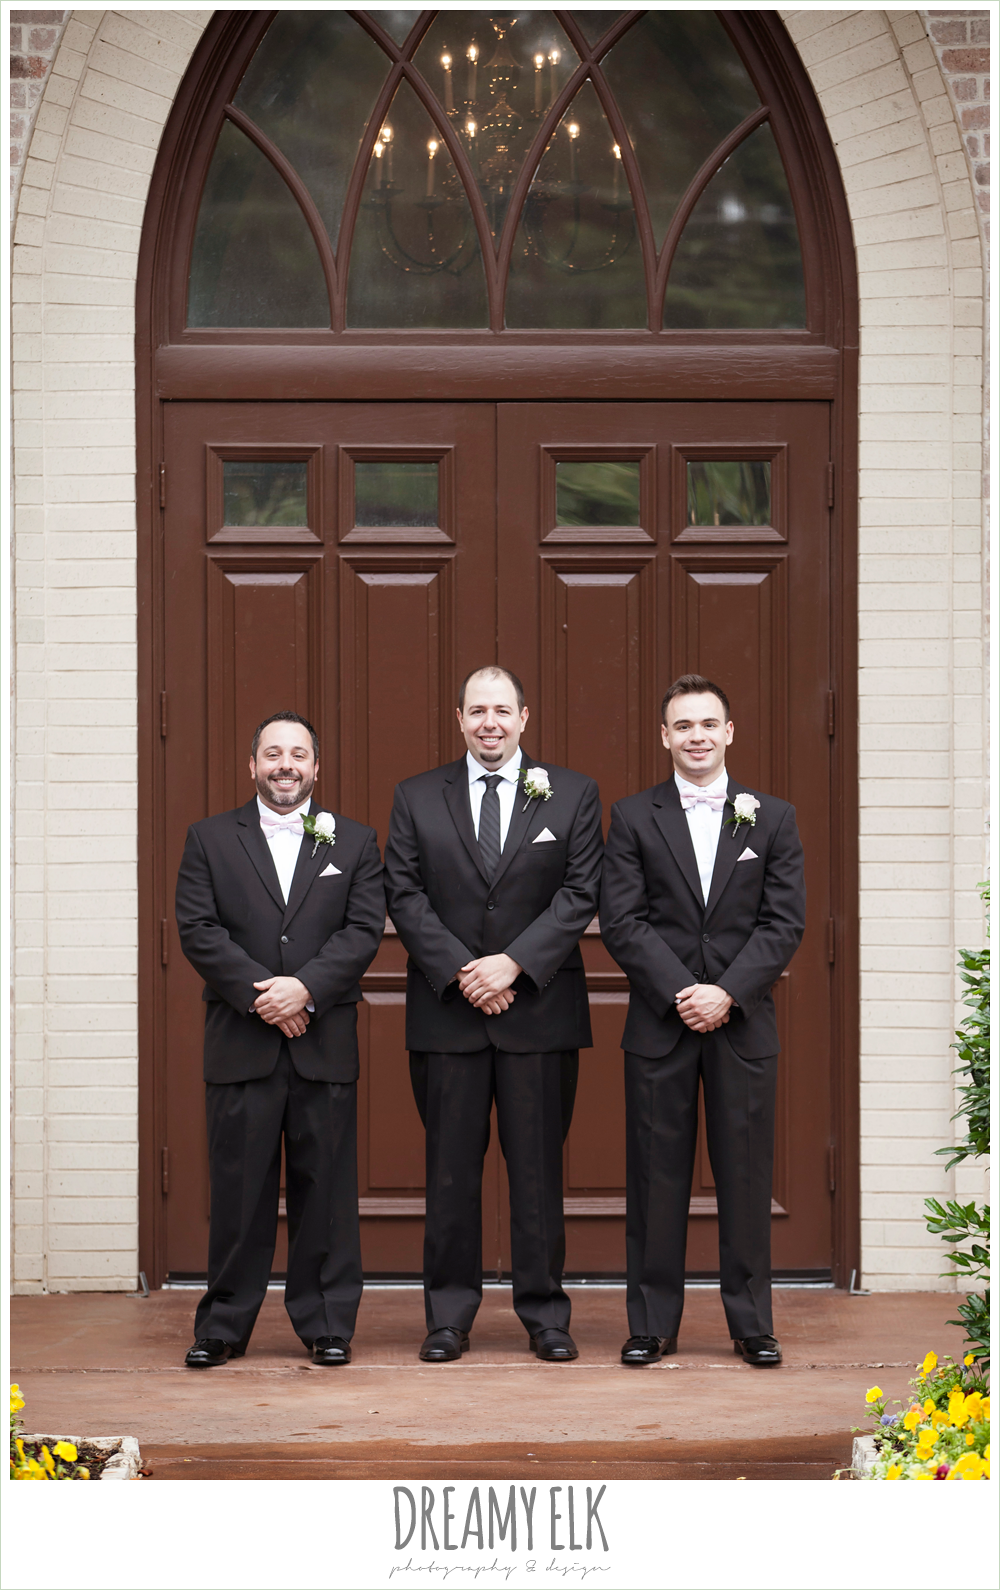 groom and groomsmen wearing black suits with pink bow ties, northeast wedding chapel, rainy wedding day photo {dreamy elk photography and design}